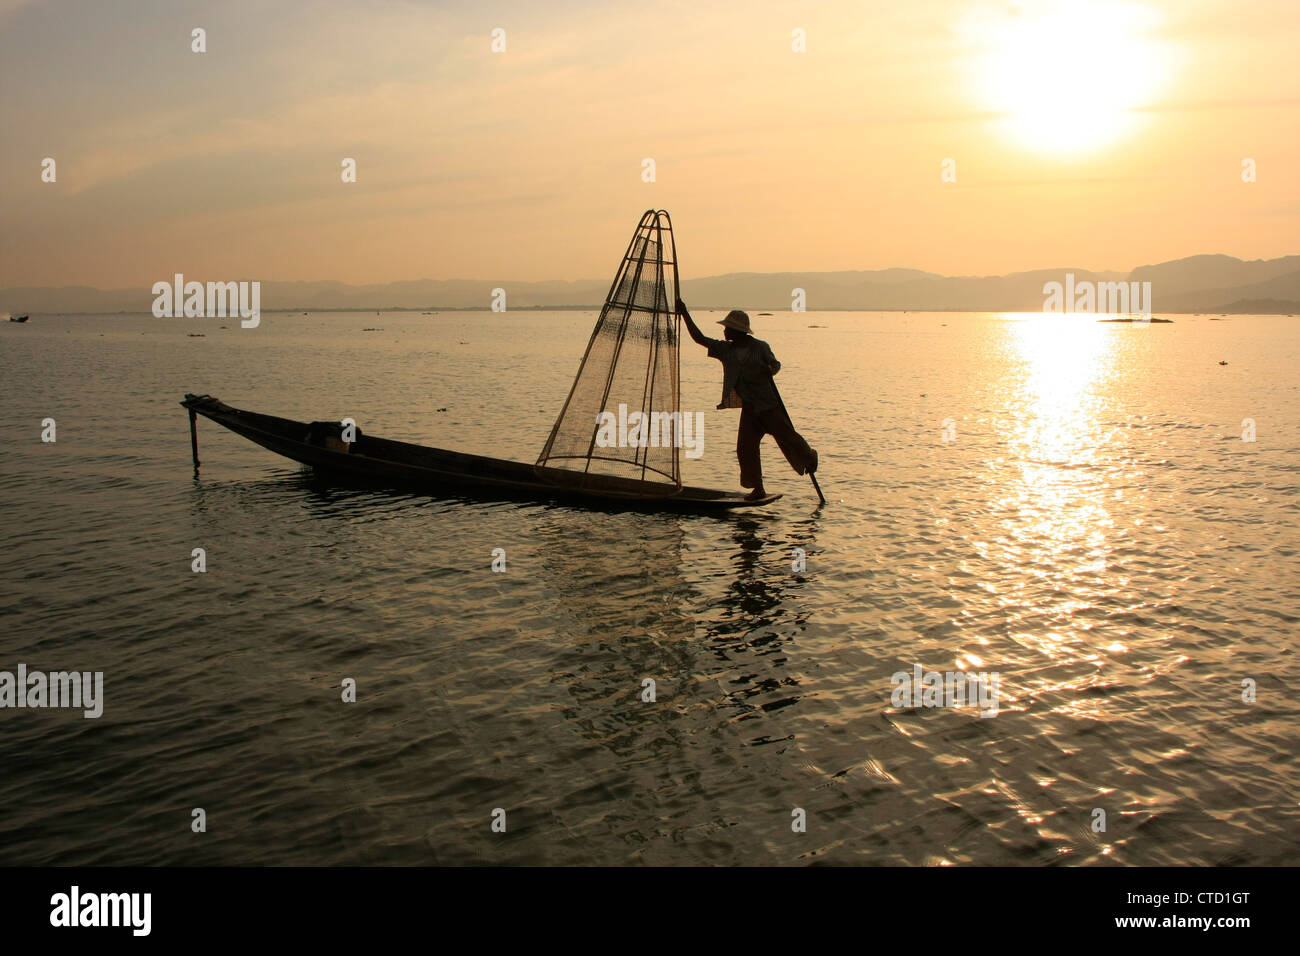 Inle lake fisherman at sunset, Shan state, Myanmar, Southeast Asia - Stock Image